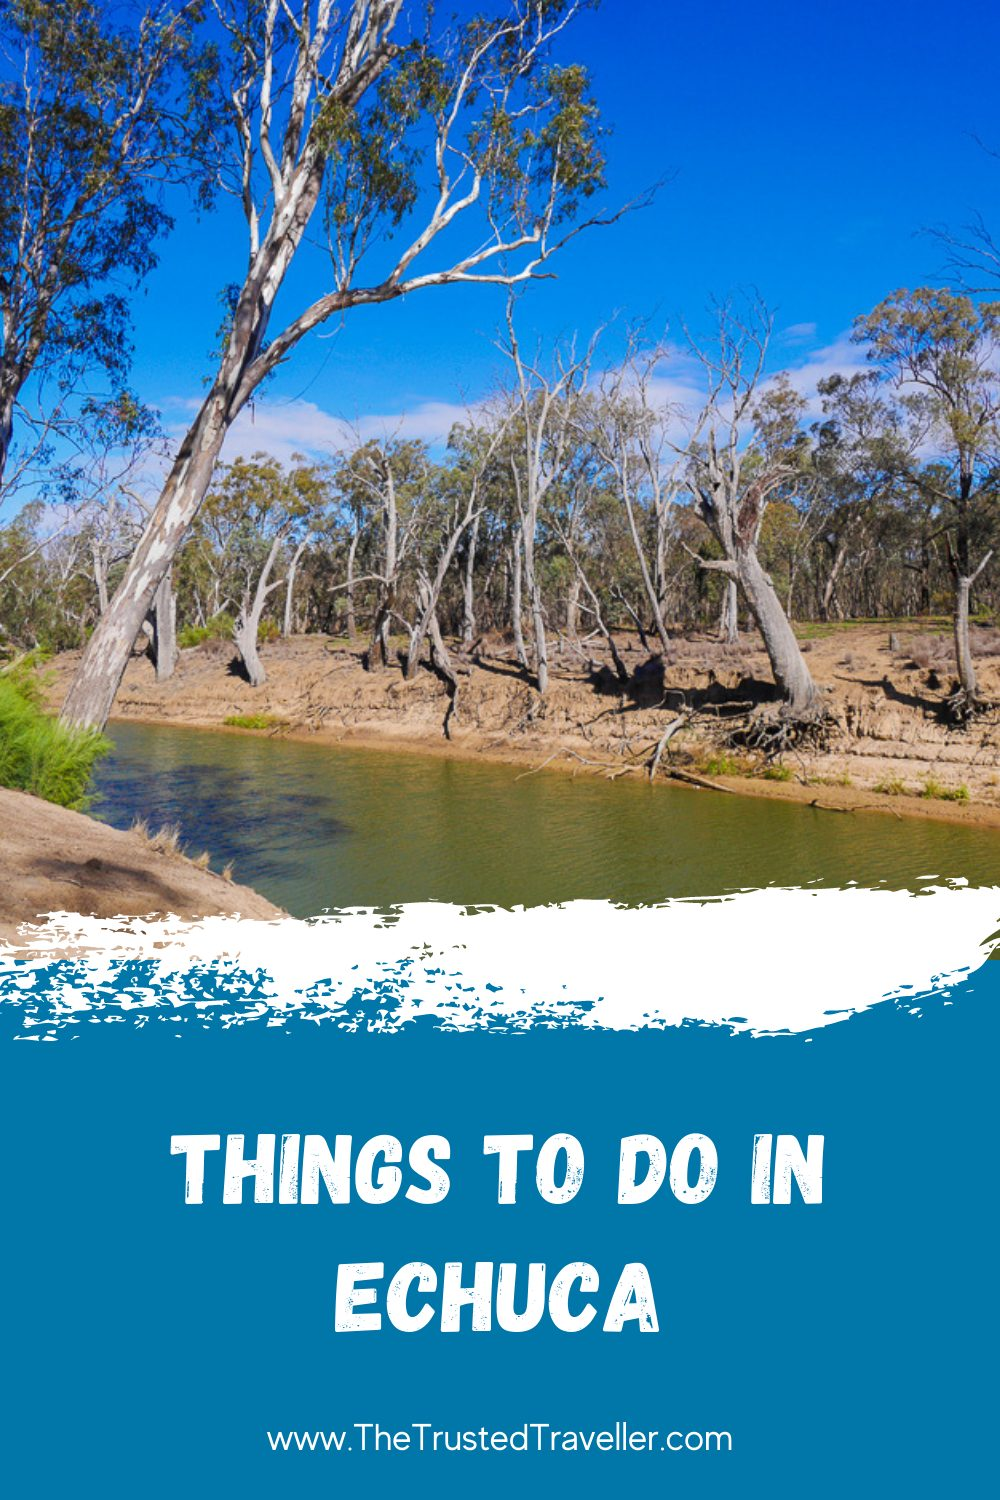 Things to Do in Echuca - The Trusted Traveller